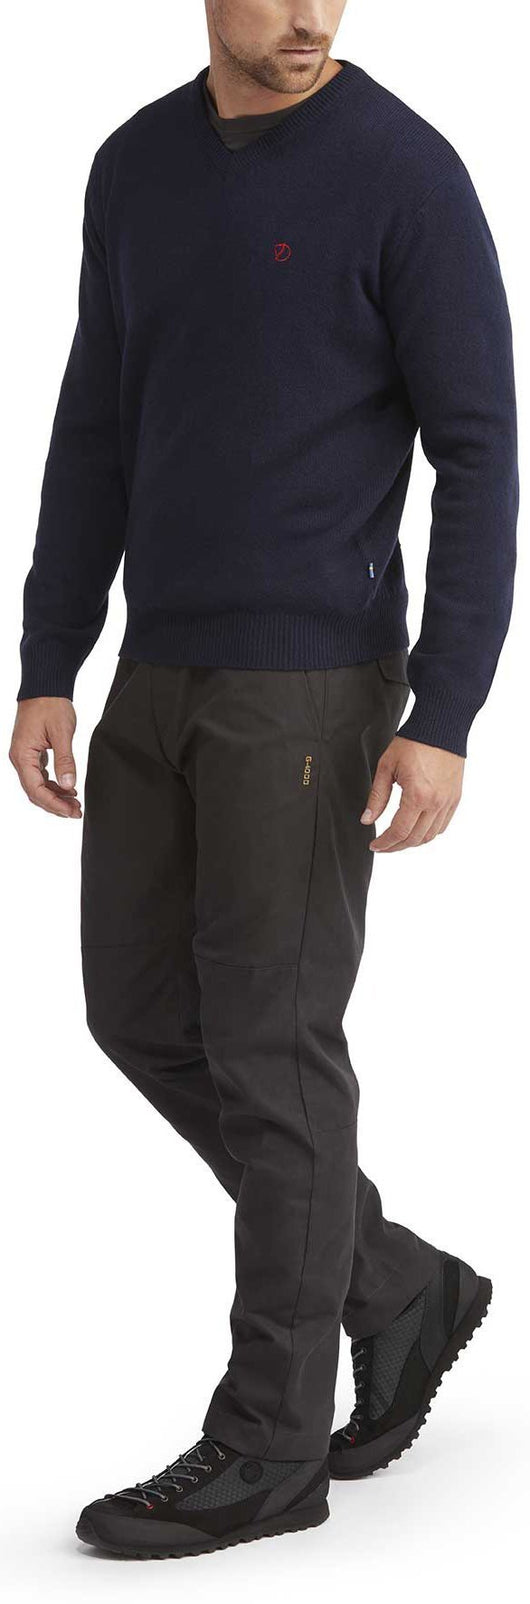 Sormland Tapered Trousers Fjallraven Canada Outdoor Llc